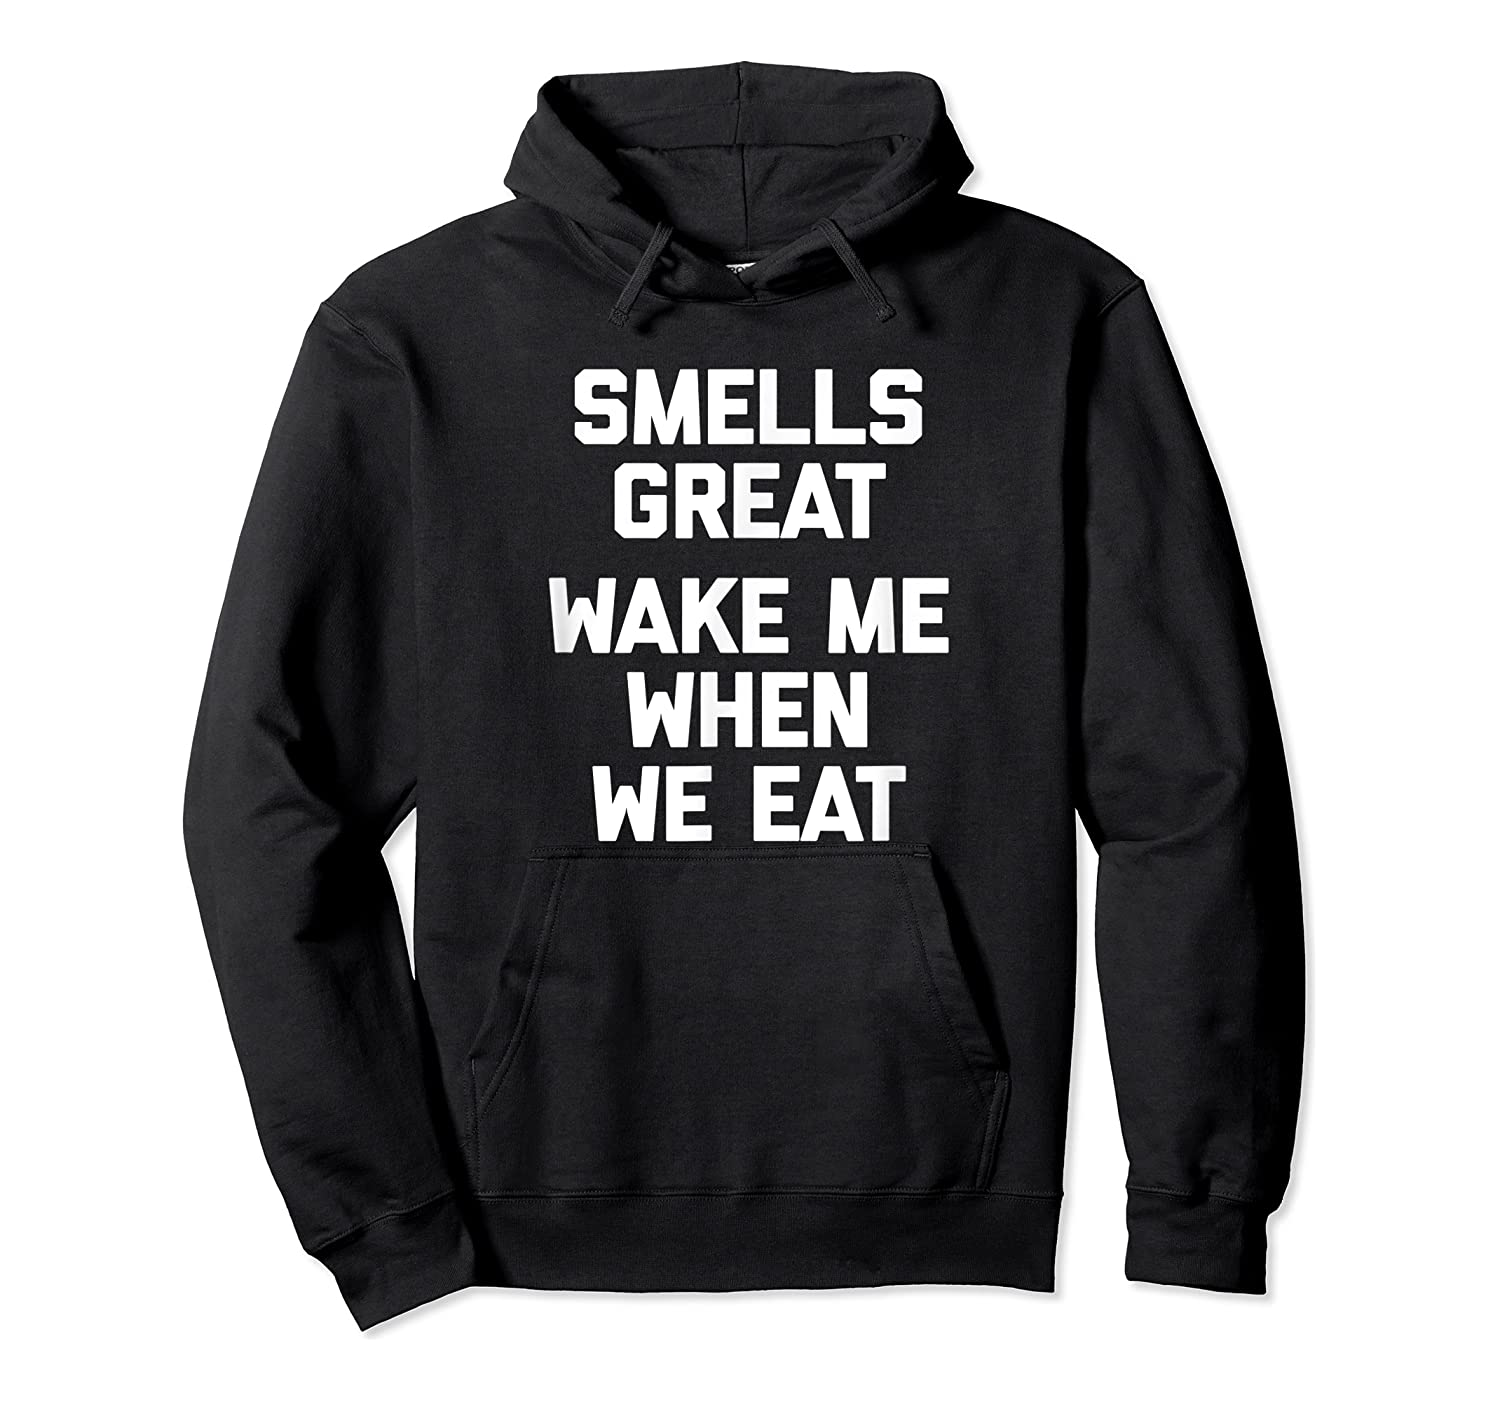 Smells Great, Wake Me When We Eat Funny Saying Food Shirts Unisex Pullover Hoodie